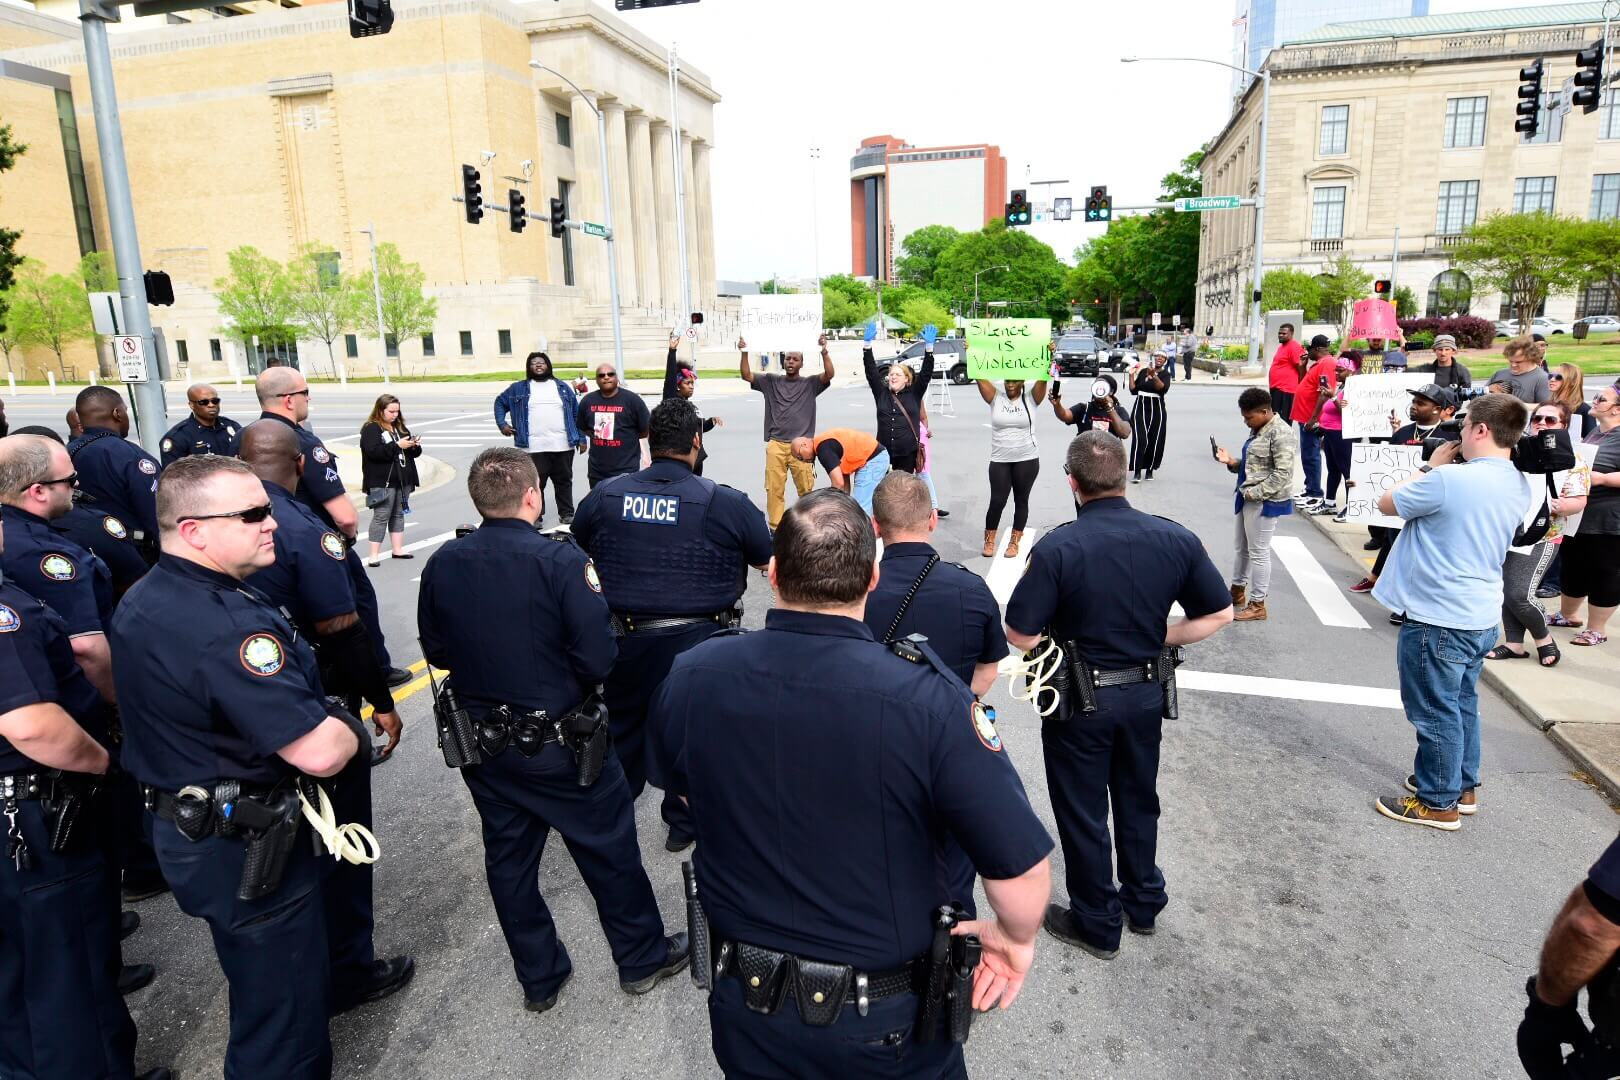 Little Rock Police stand in front of protestors demanding justice for Bradley Blackshire